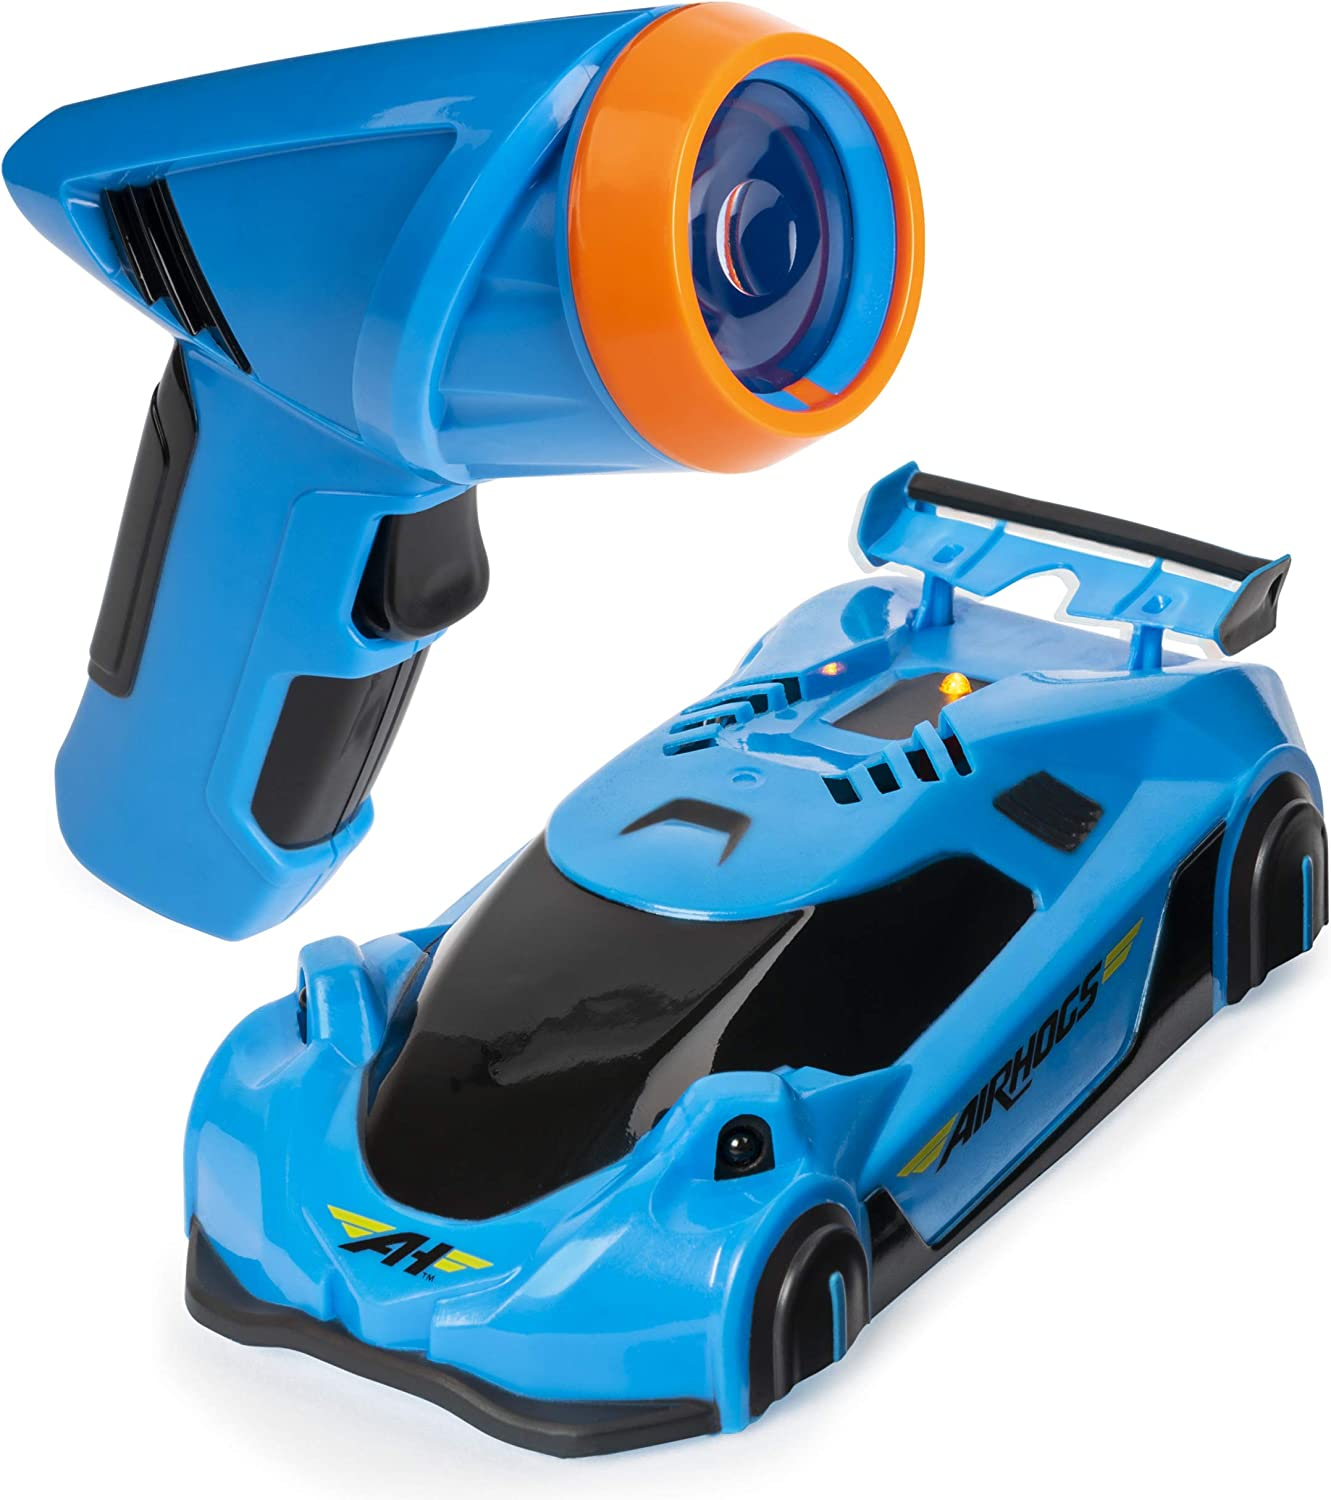 Top 15 Best Electronic Gifts For Kids (2020 Reviews & Buying Guide) 2